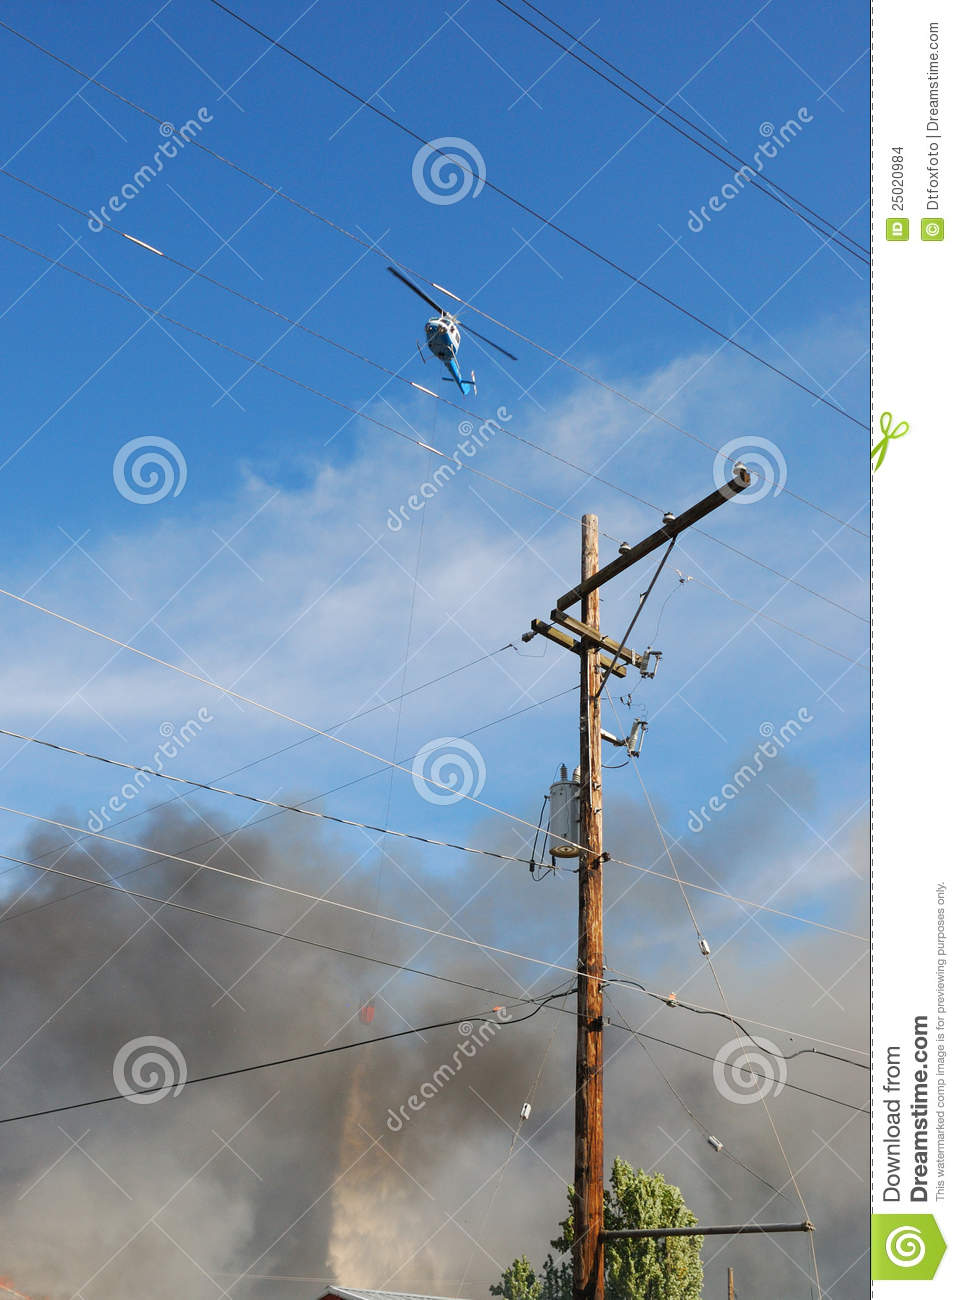 Hwy 99 Fire stock photo  Image of electrician, fire, water - 25020984